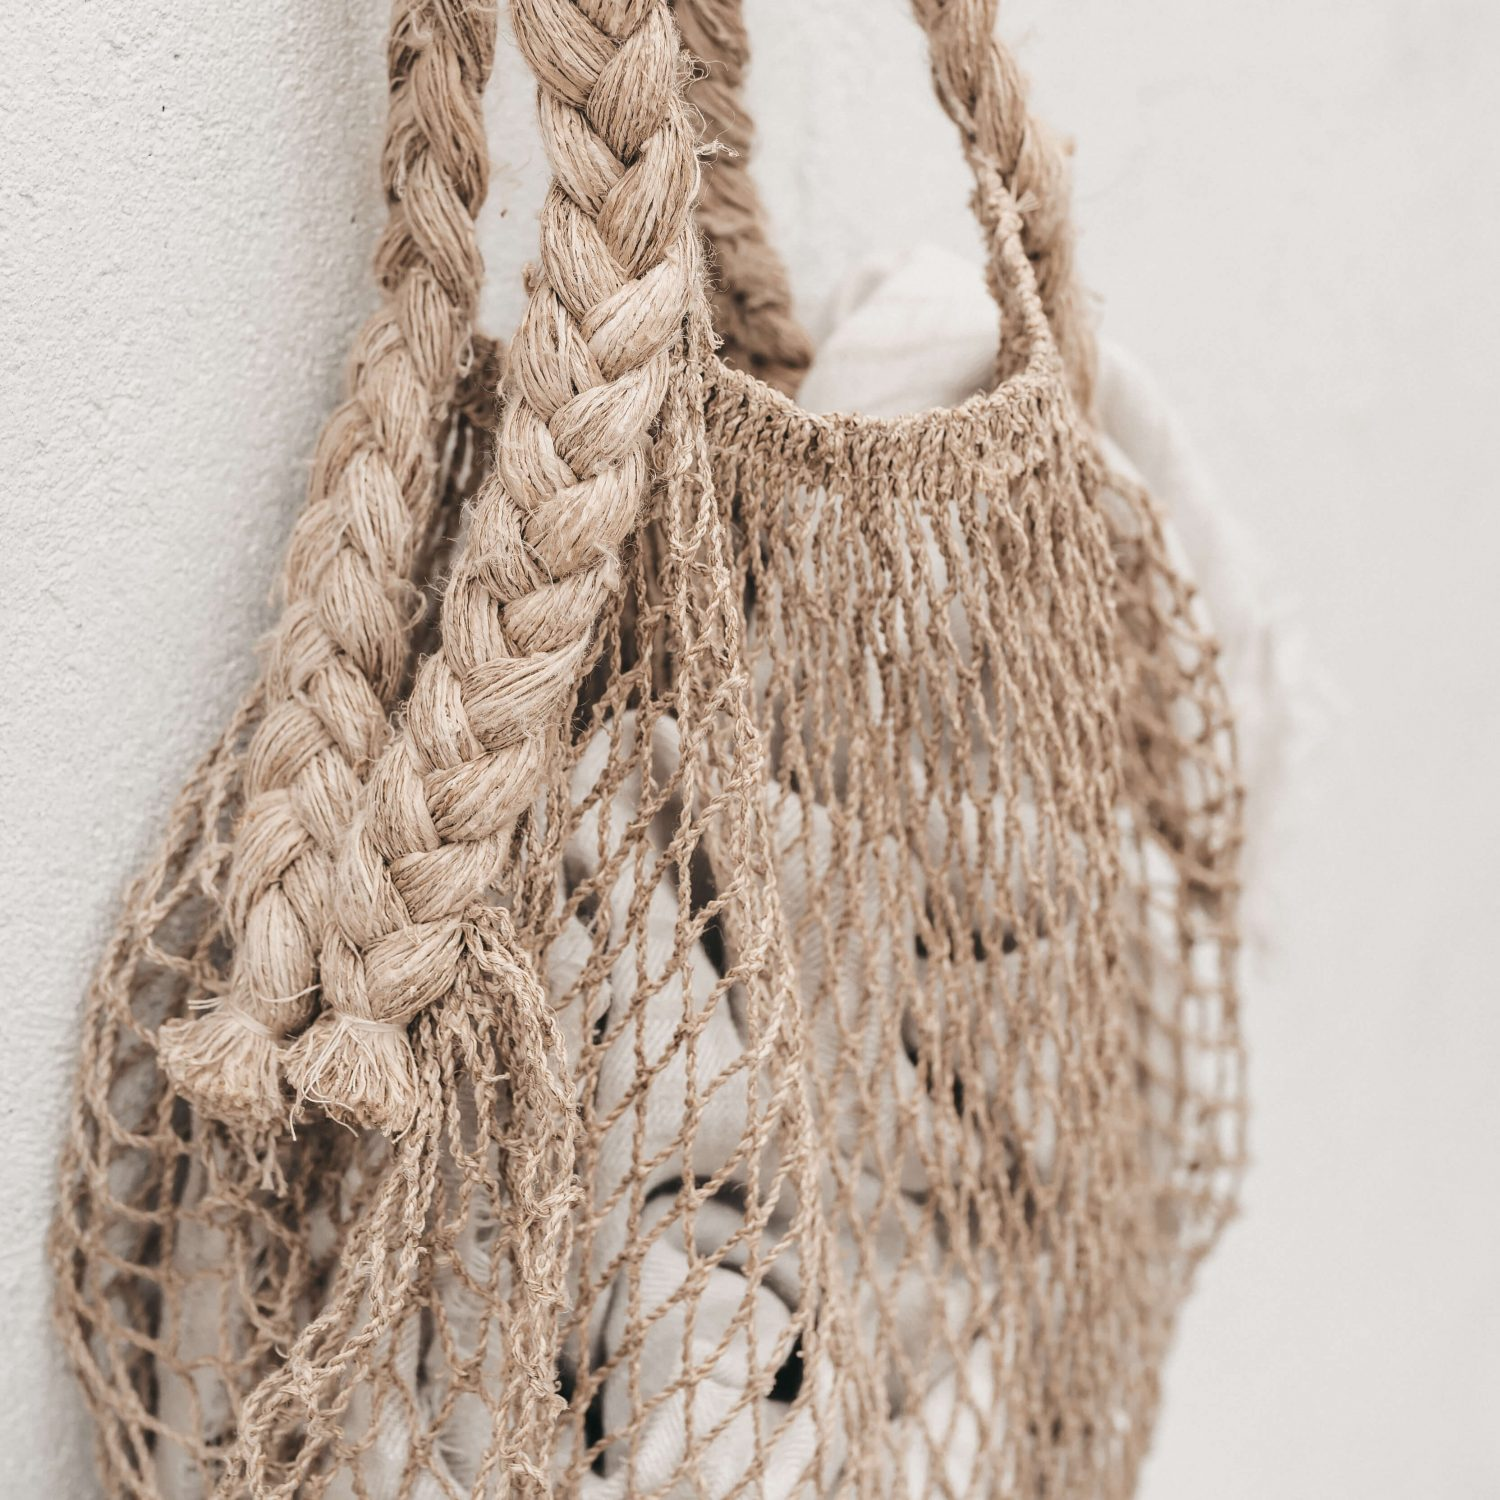 Nowhere & Everywhere Zero Waste 100% Hemp String Bag Braid Market Shopping Bag Plastic Free Eco-Friendly Ethical Labor Sustainable